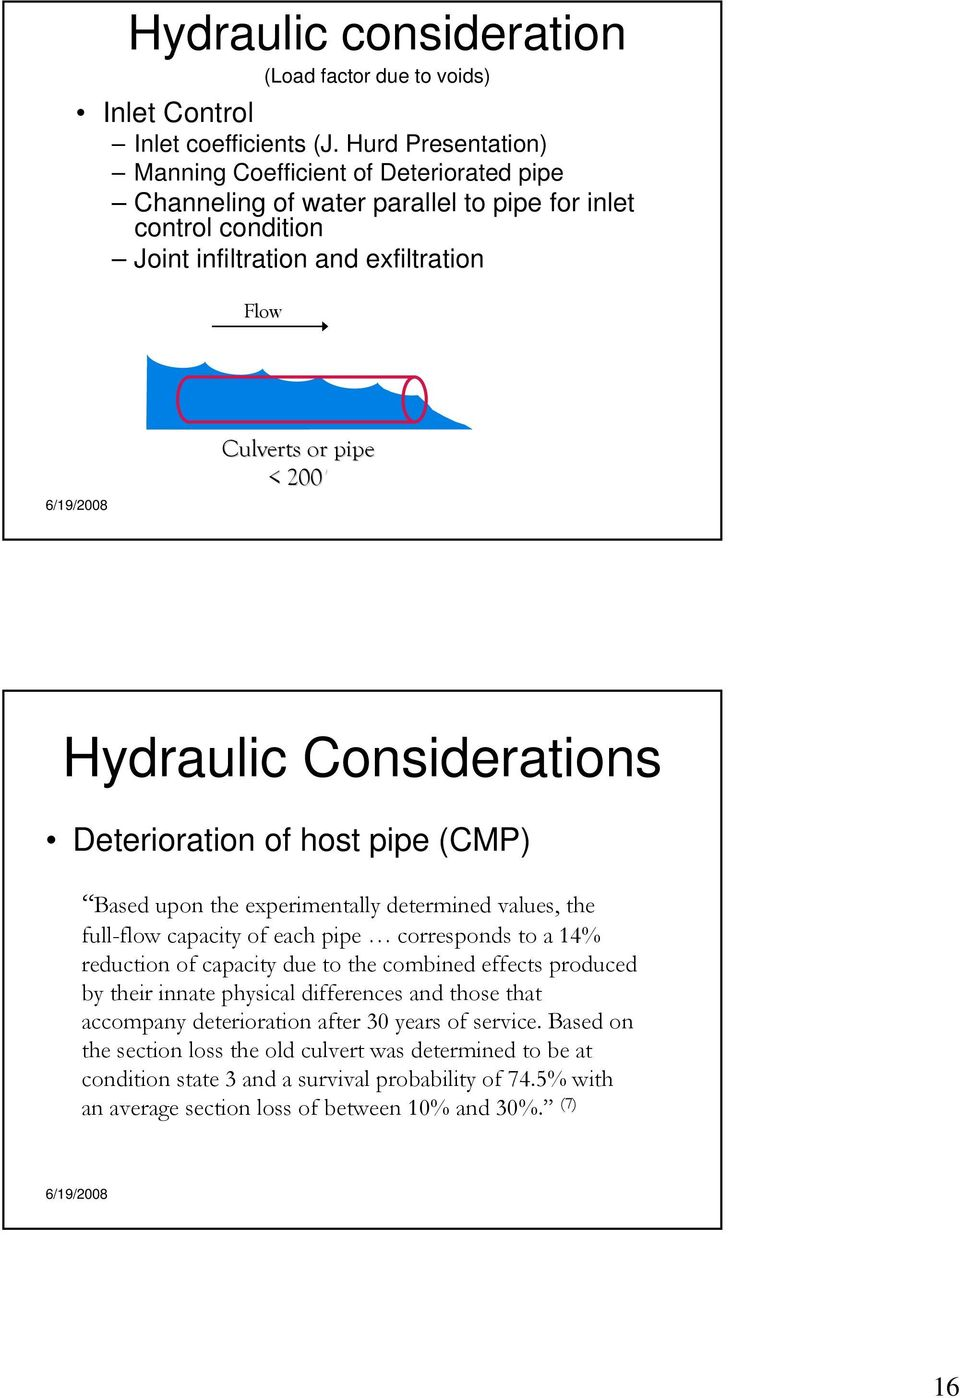 Hydraulic Considerations Deterioration of host pipe (CMP) Based upon the experimentally determined values, the full-flow capacity of each pipe corresponds to a 14% reduction of capacity due to